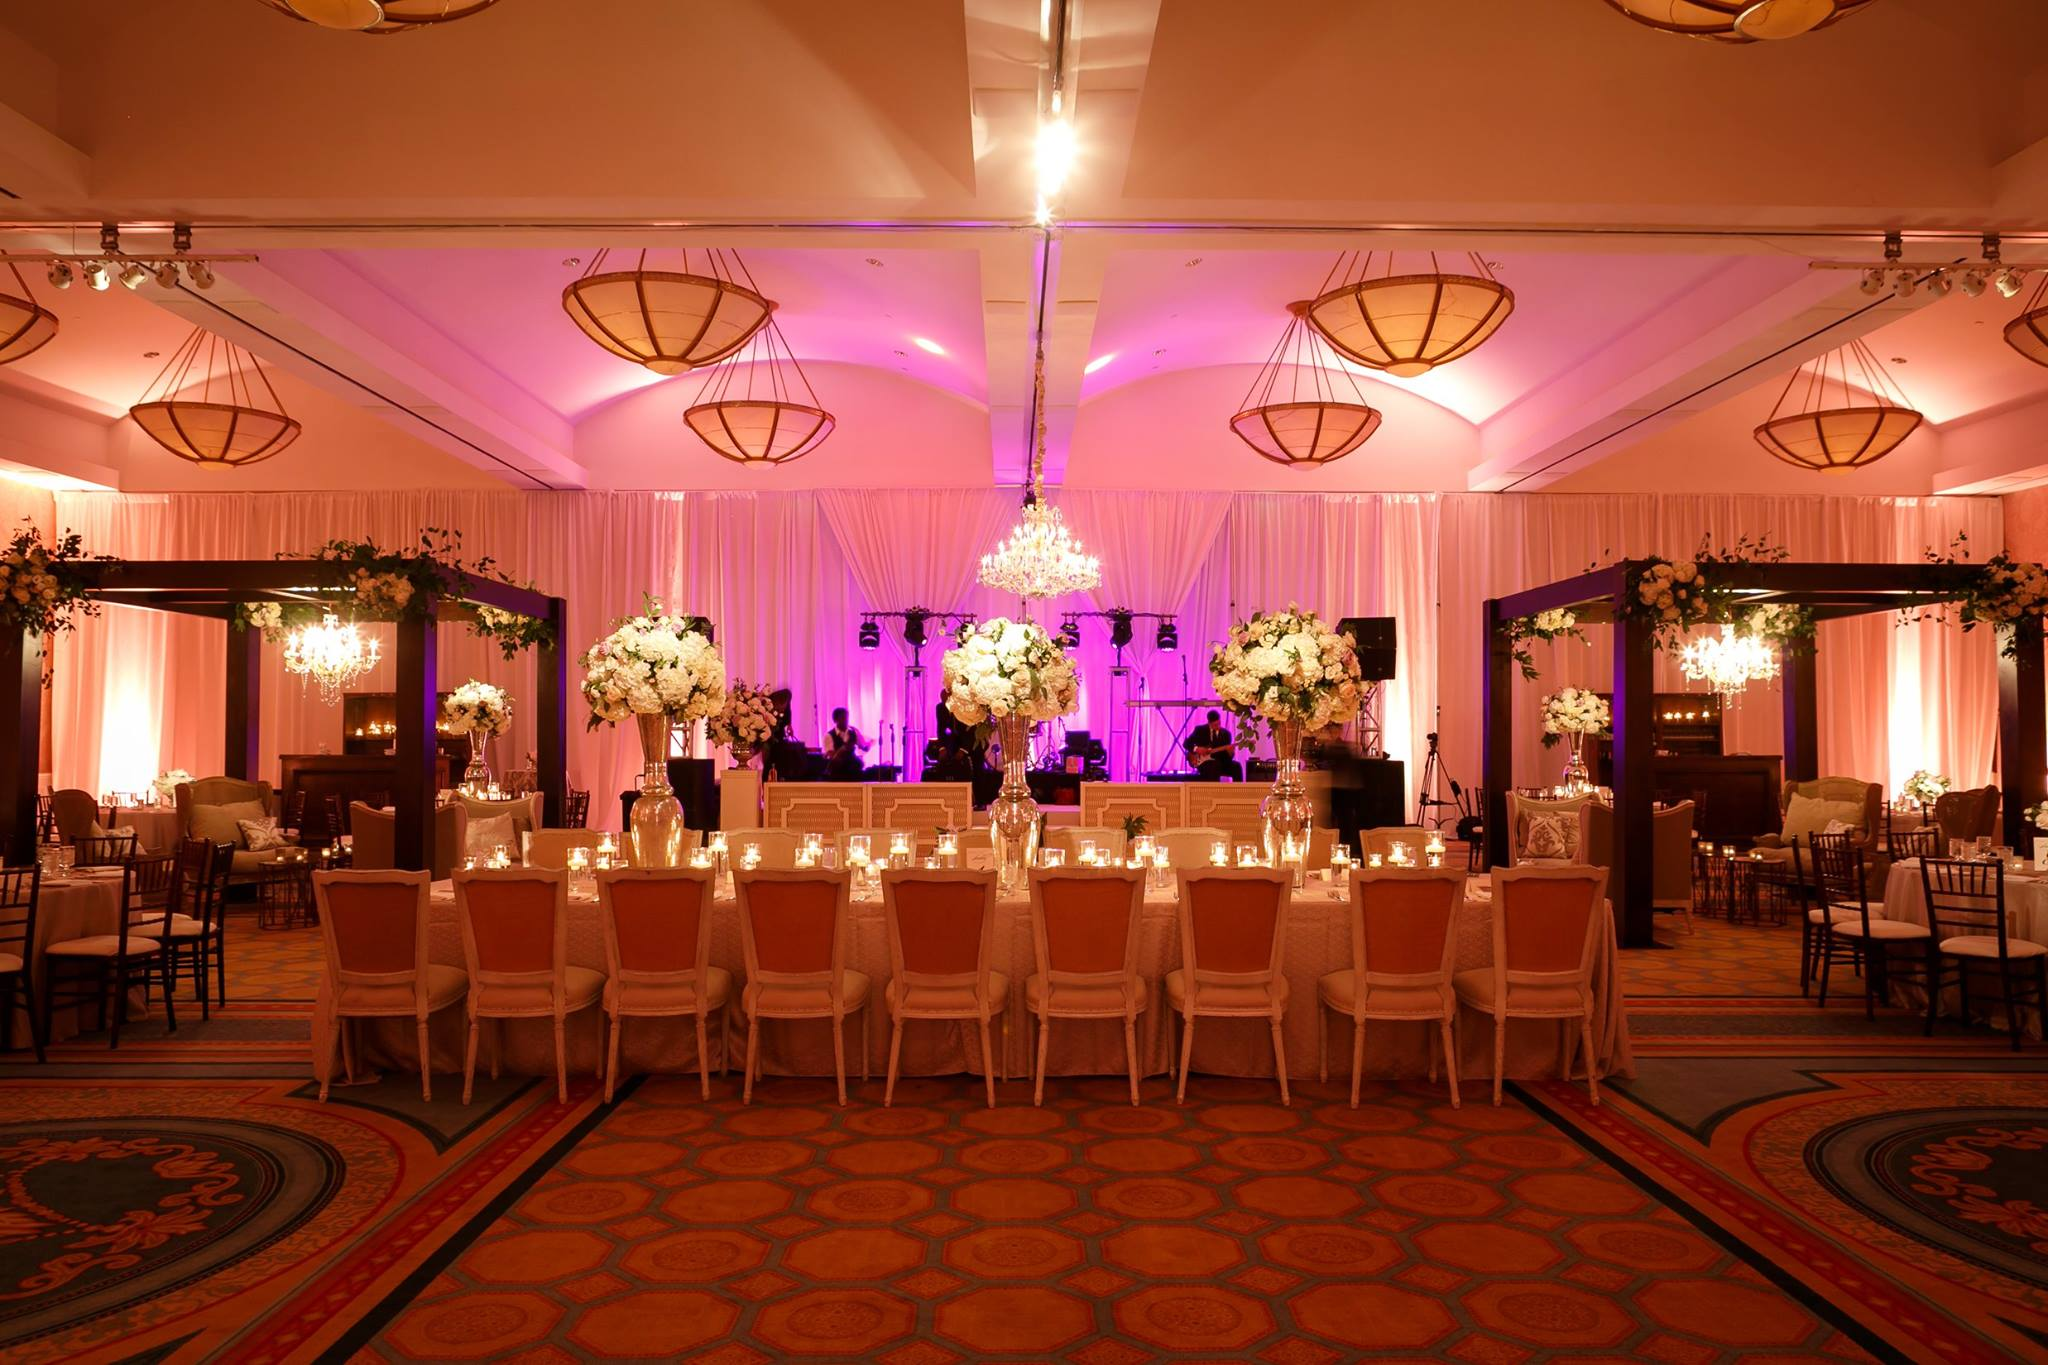 10849057 1039576489389981 23130130493126523 O Belobelo Mansionelegantevent Lightinglightinglightspinspotsuplightingwedding Lighting